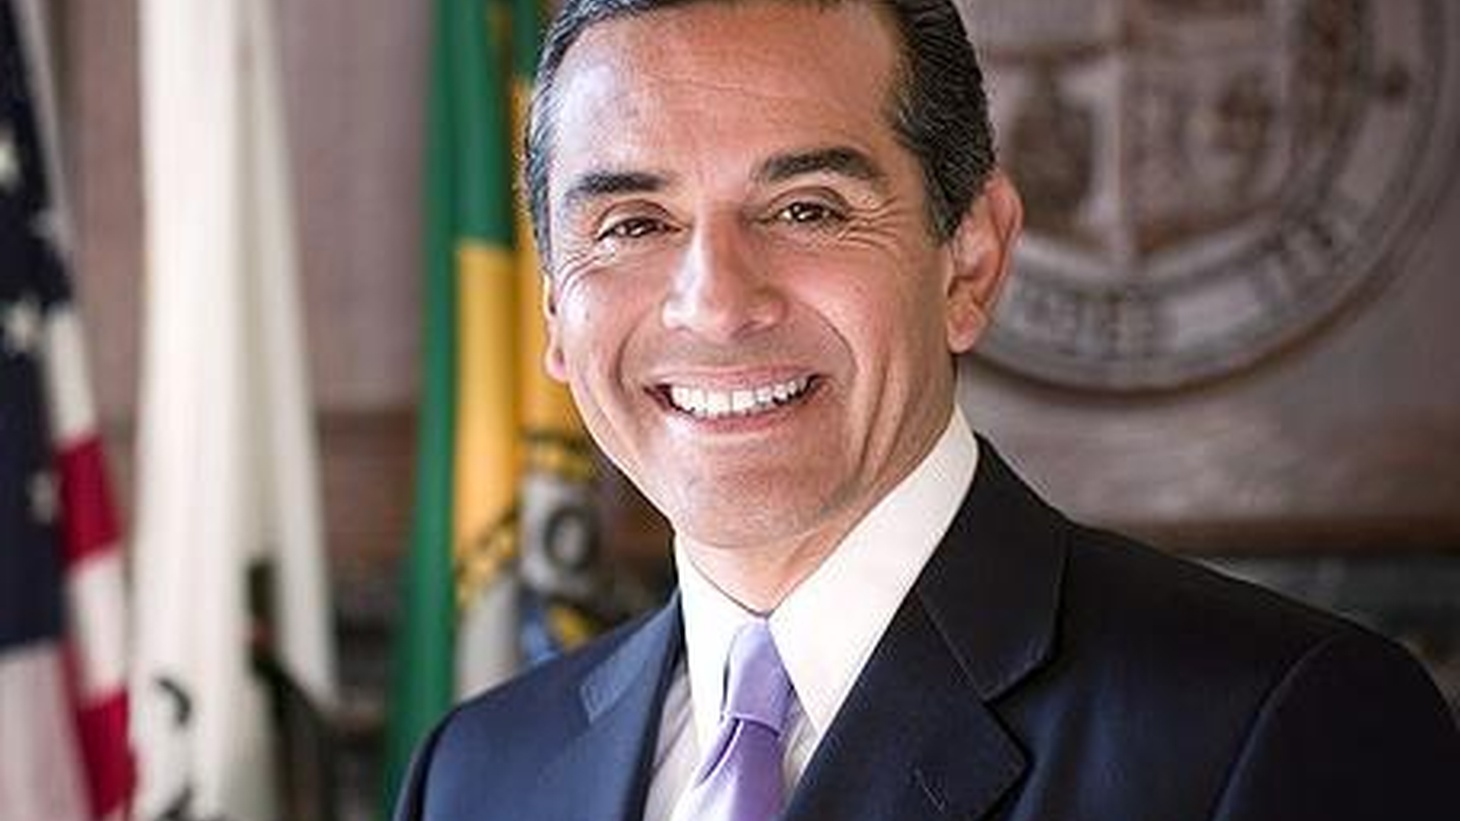 The ballots have been counted. The people have spoken. And Antonio Villaraigosa has been invited to remain the mayor of Los Angeles for another four years. If he chooses...